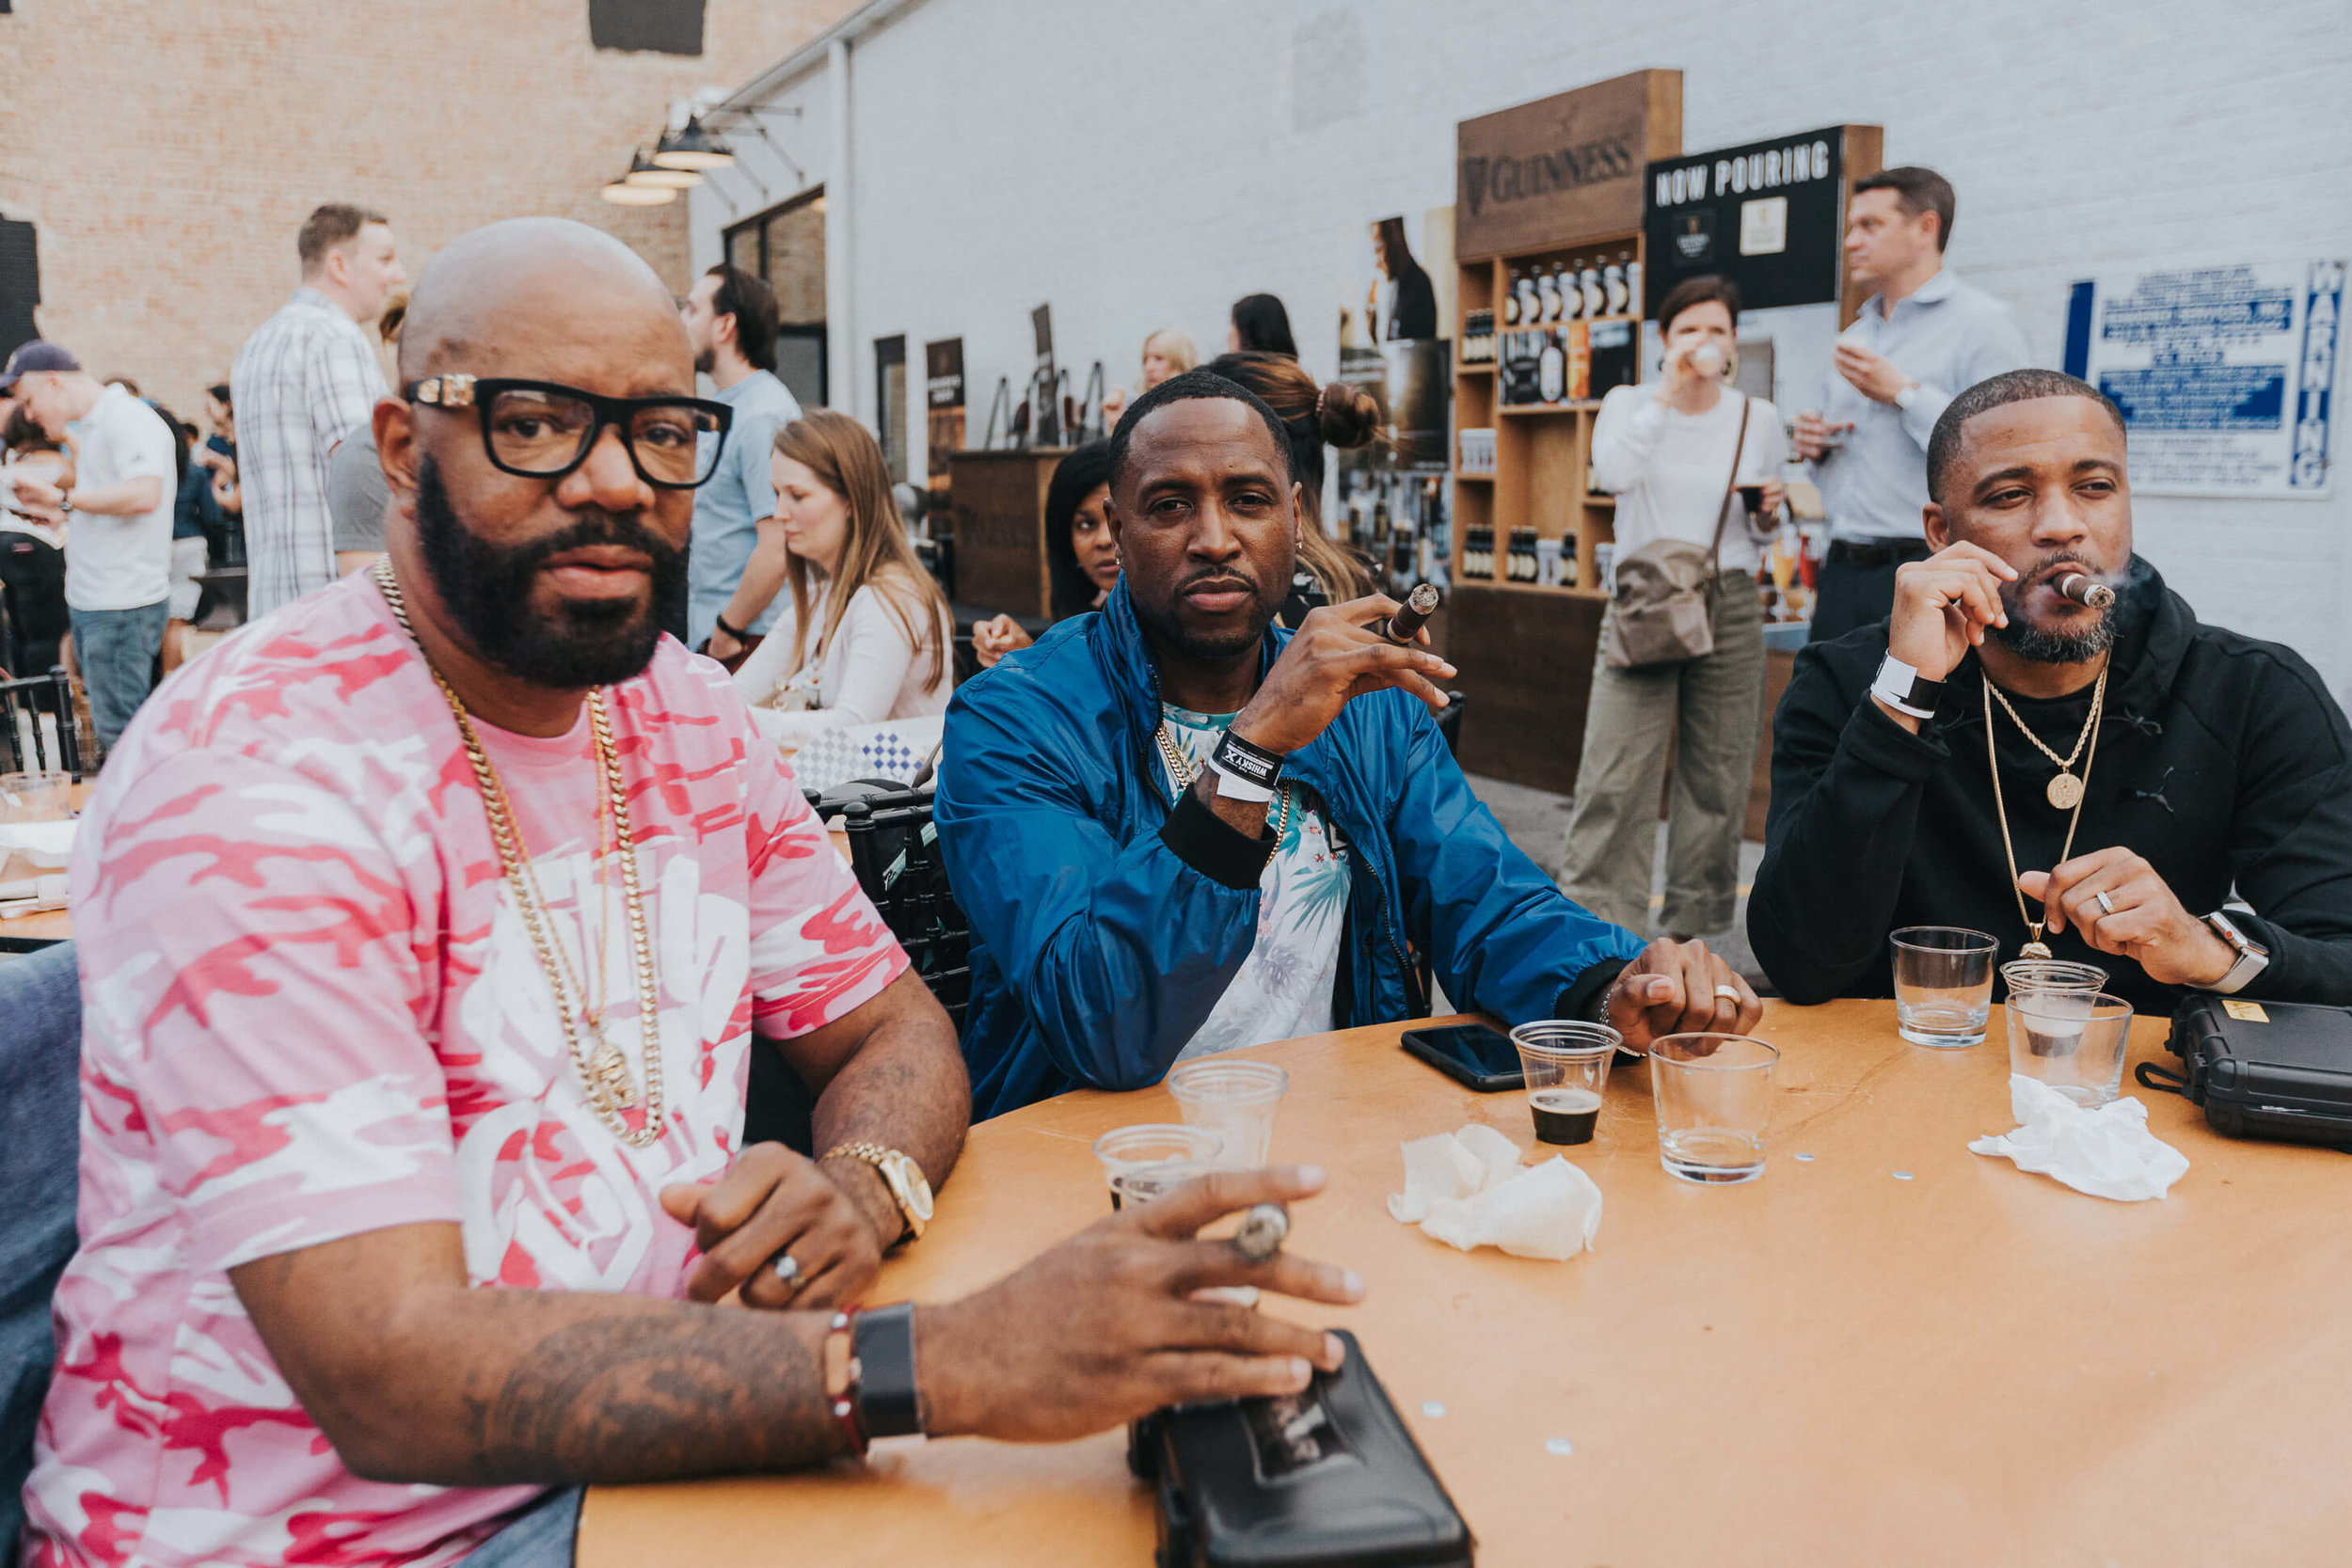 Chicago Event Photography_The Whisky X @ Revel_06.jpg